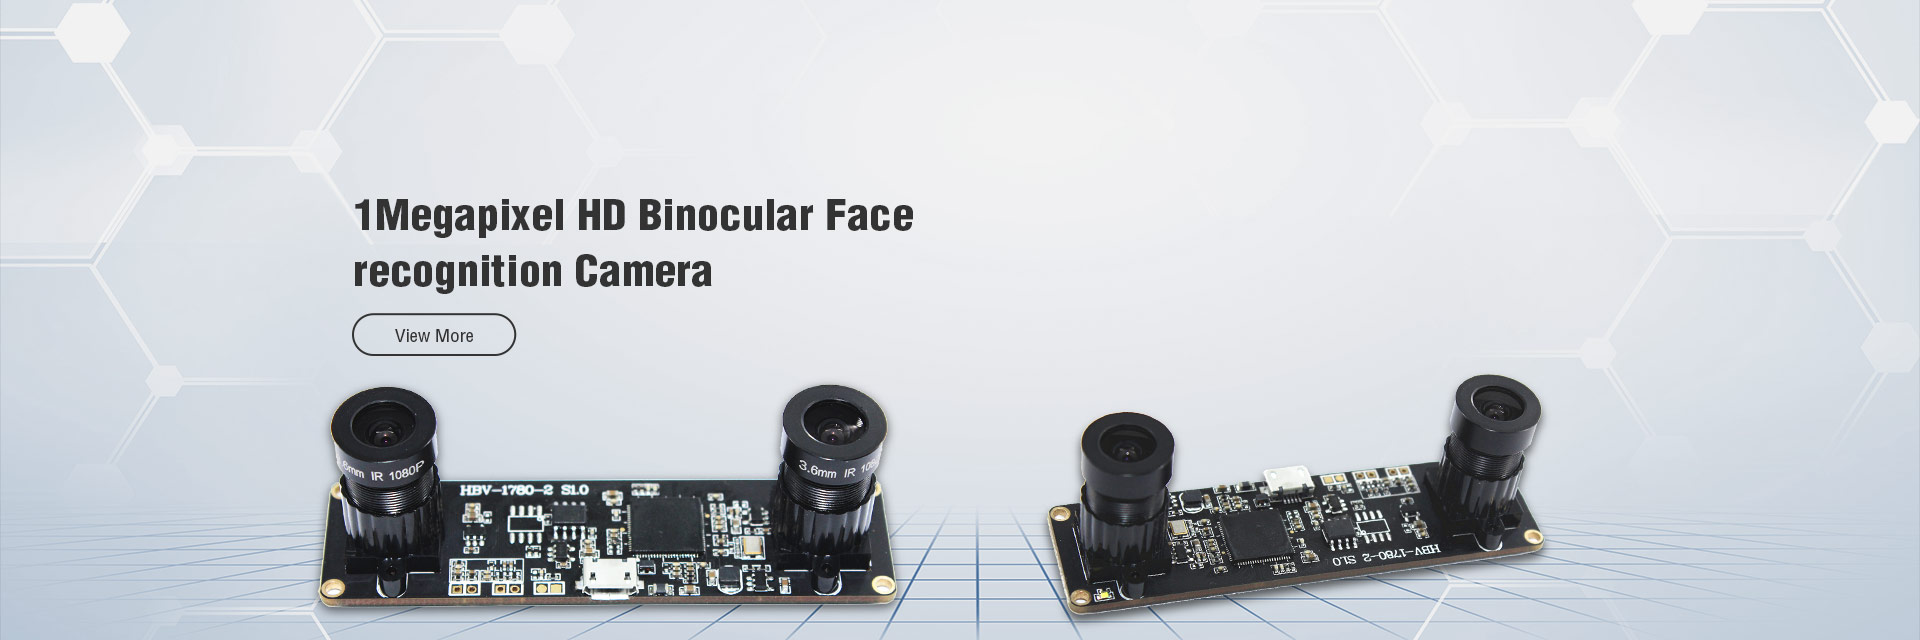 1Megapixel HD Binocular Face recognition Camera